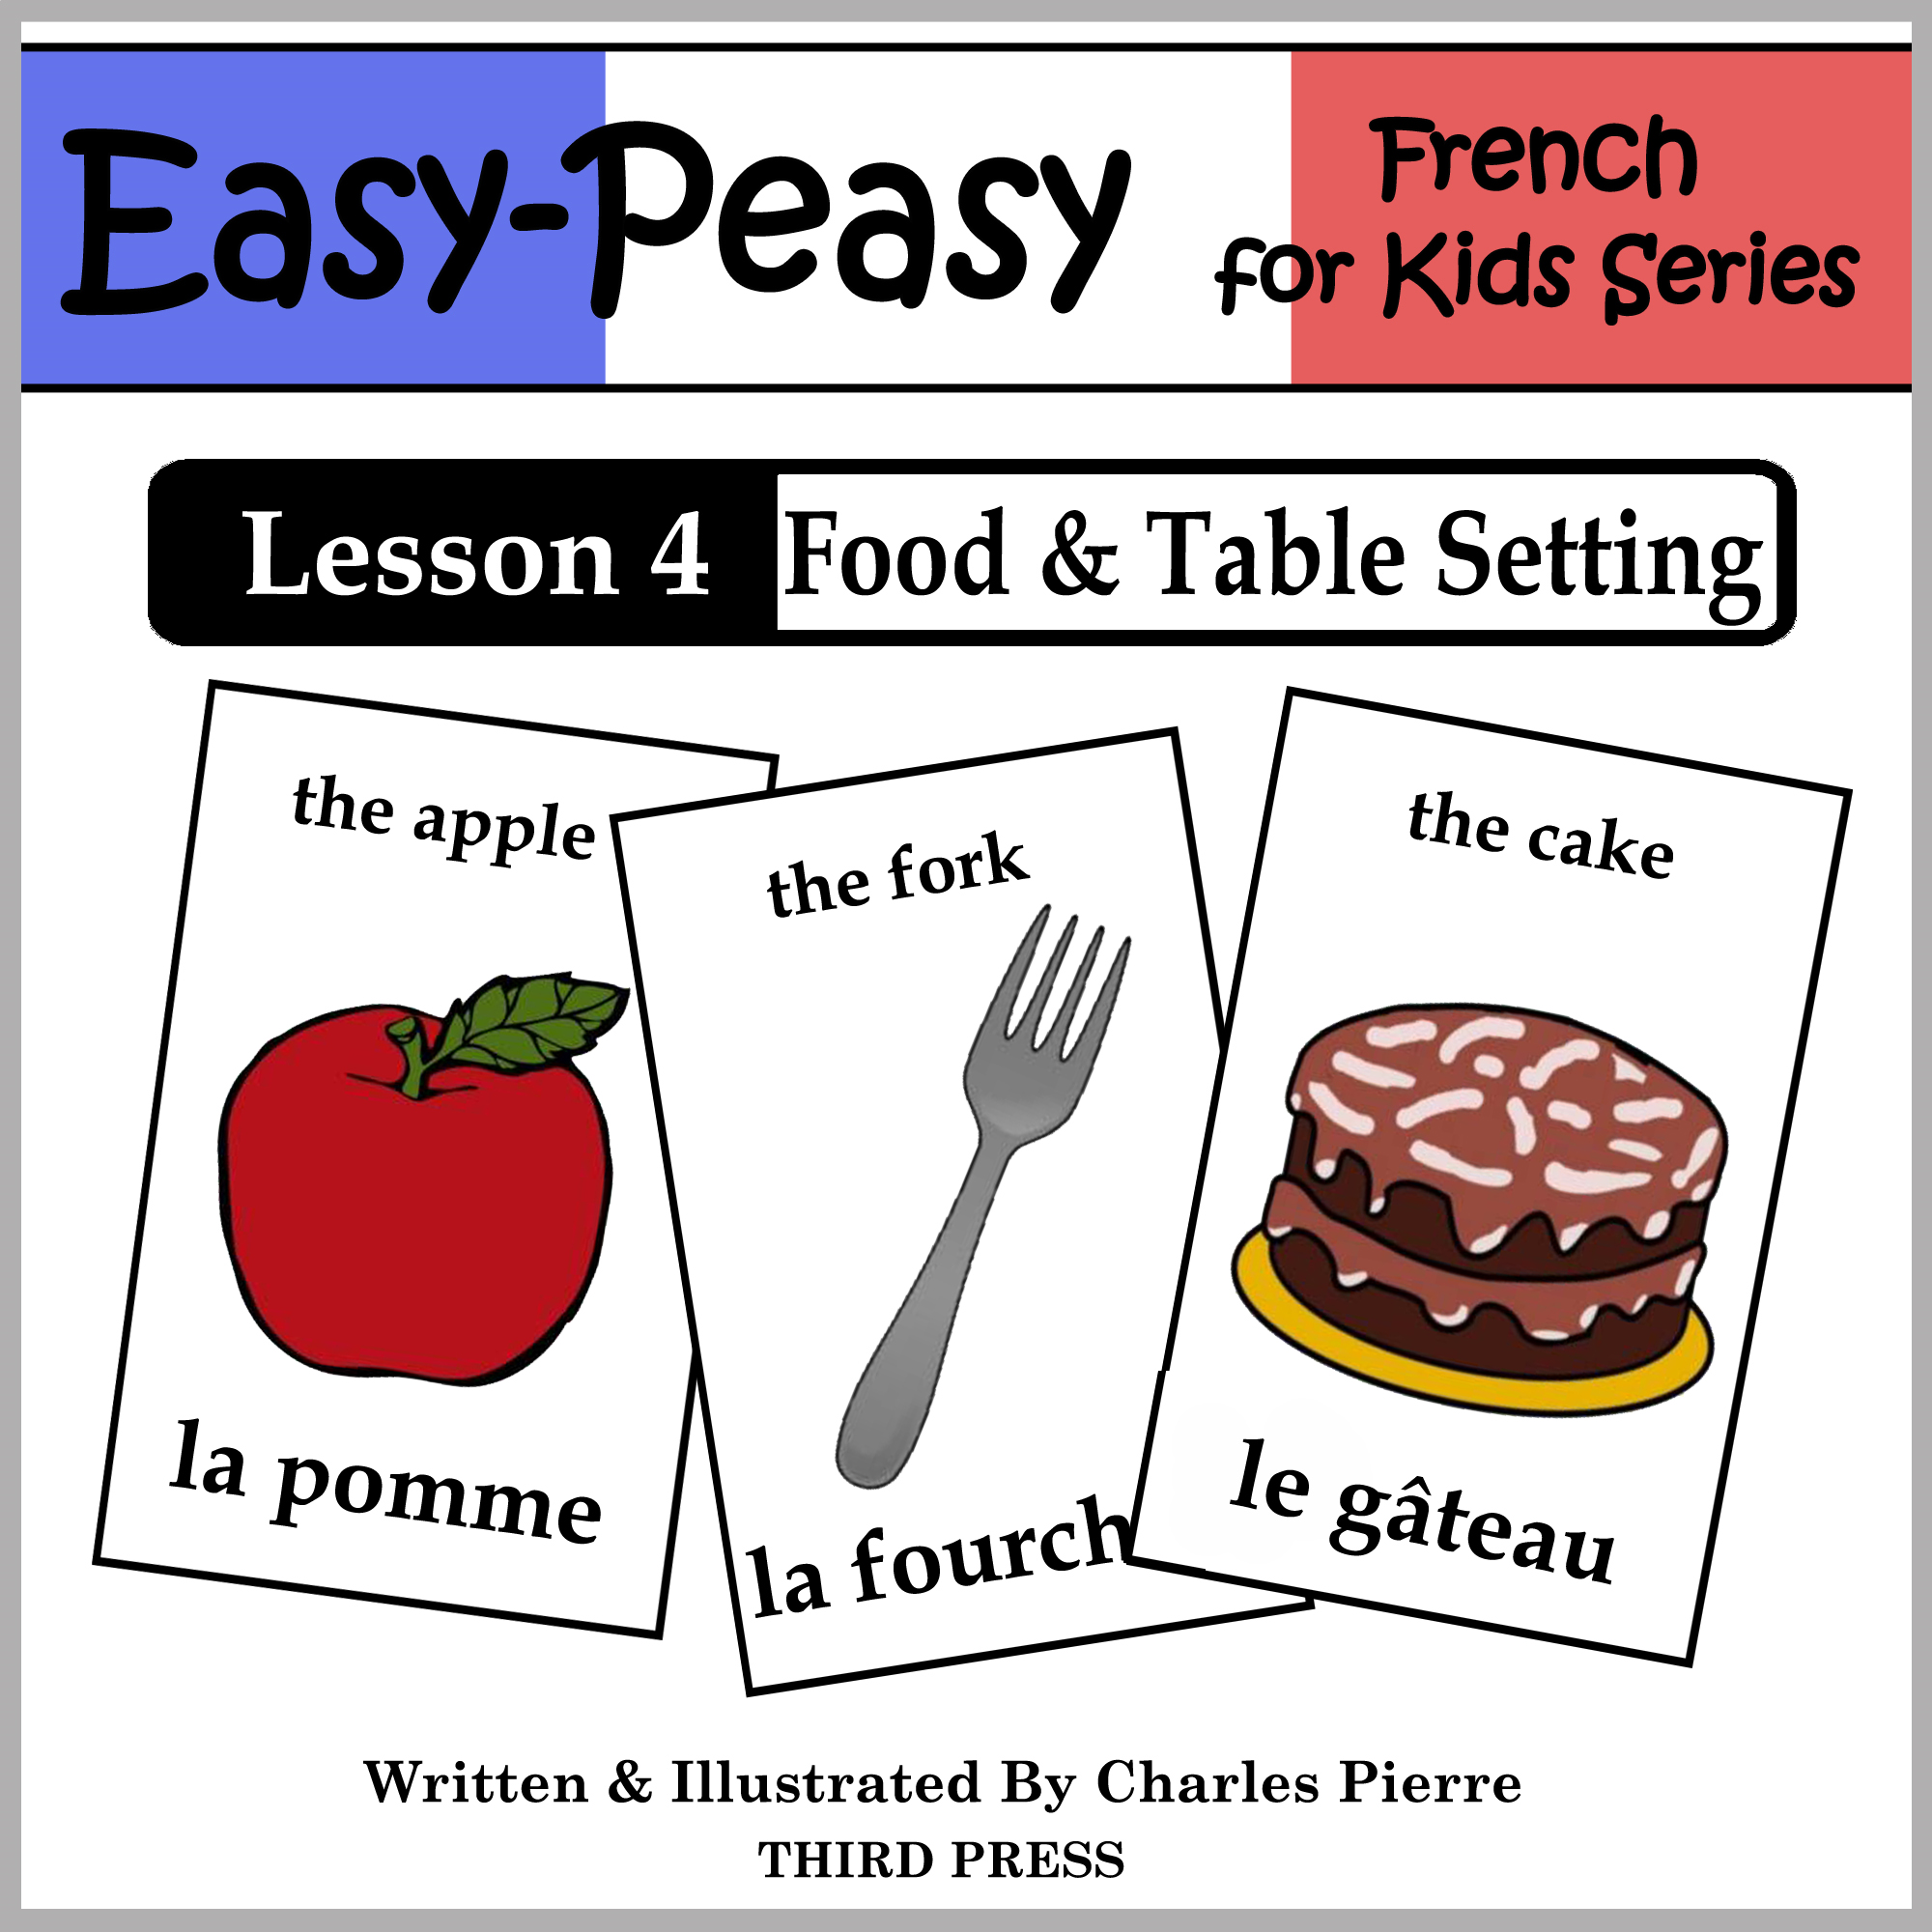 French Lesson 4: Food & Table Setting By: Charles Pierre